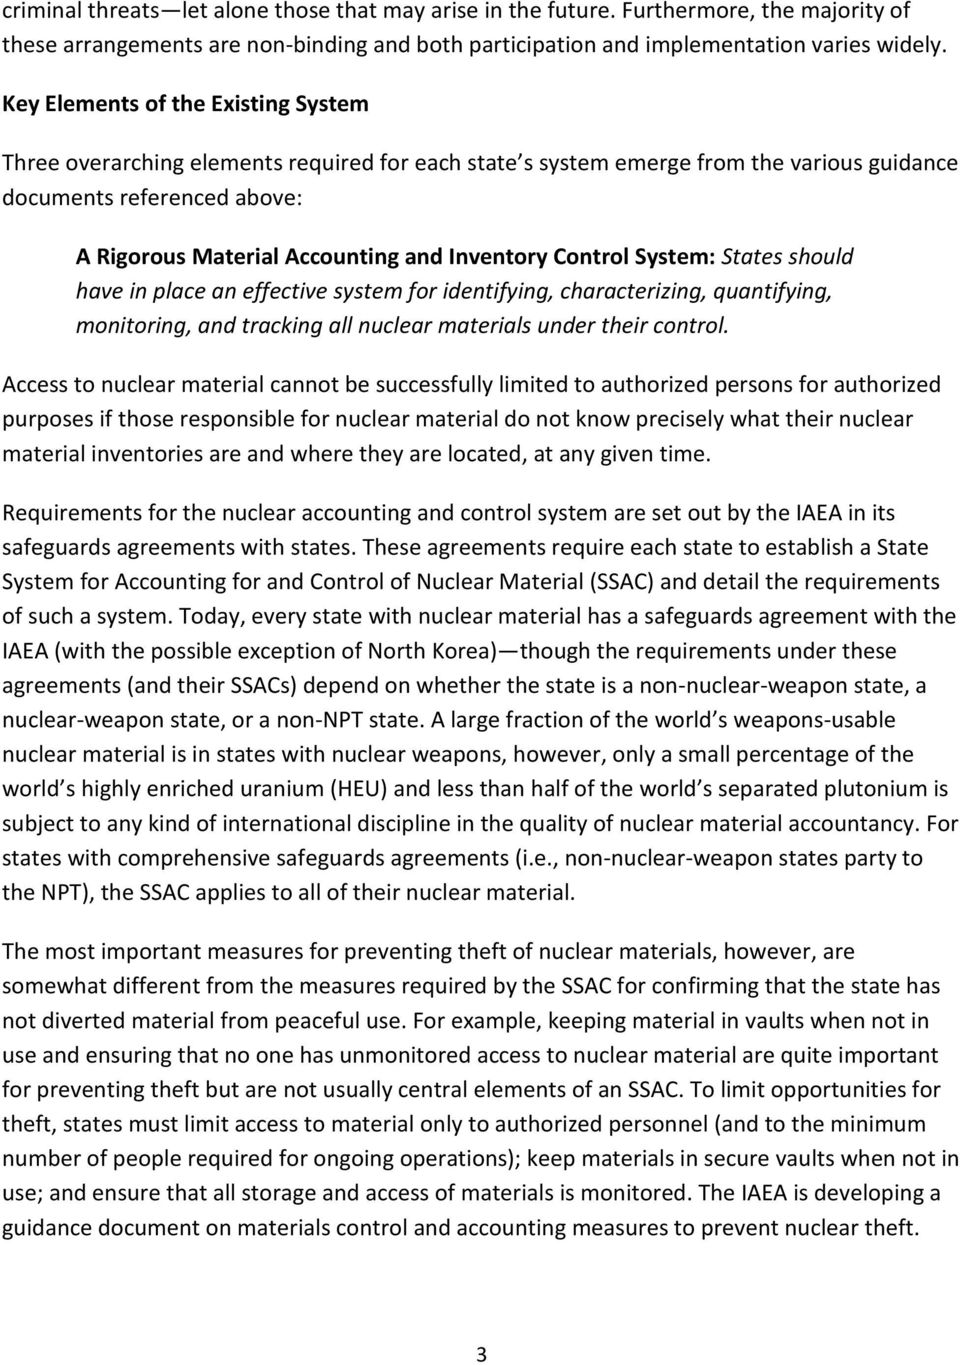 Inventory Control System: States should have in place an effective system for identifying, characterizing, quantifying, monitoring, and tracking all nuclear materials under their control.